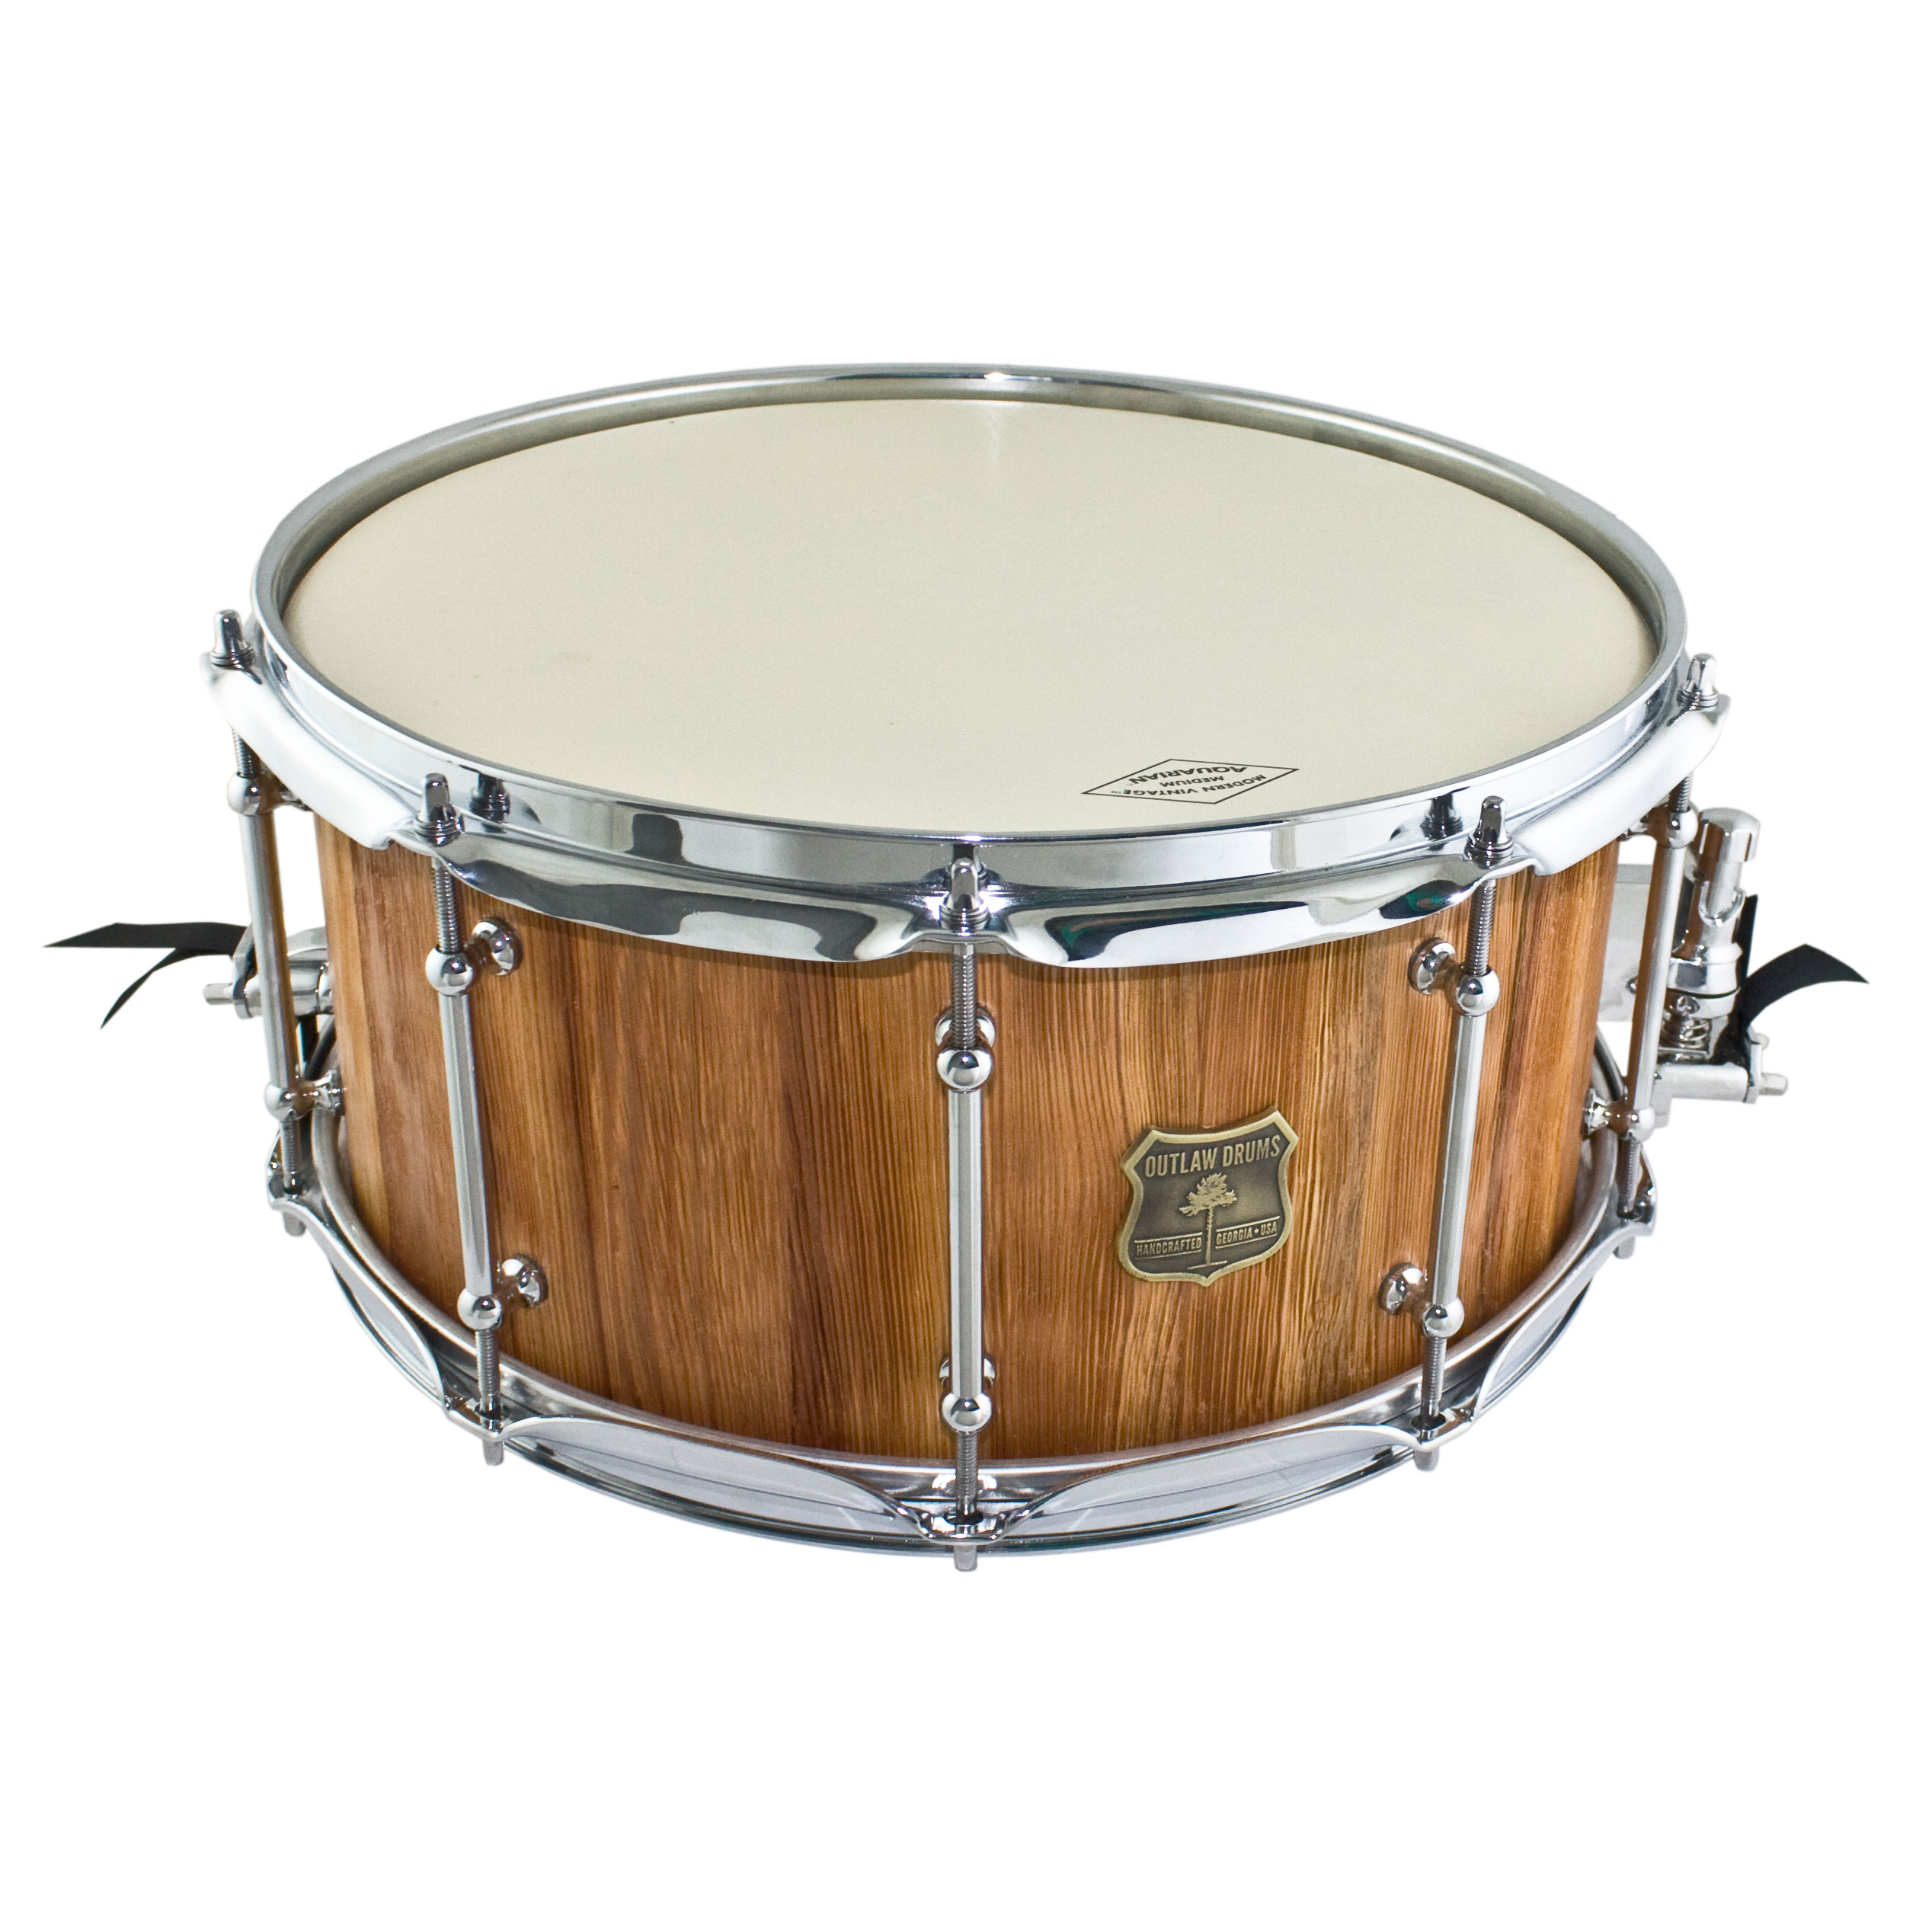 """Outlaw Drums 7"""" x 14"""" Weathered Heart Pine Reborn Snare Drum in Sunset Clear"""